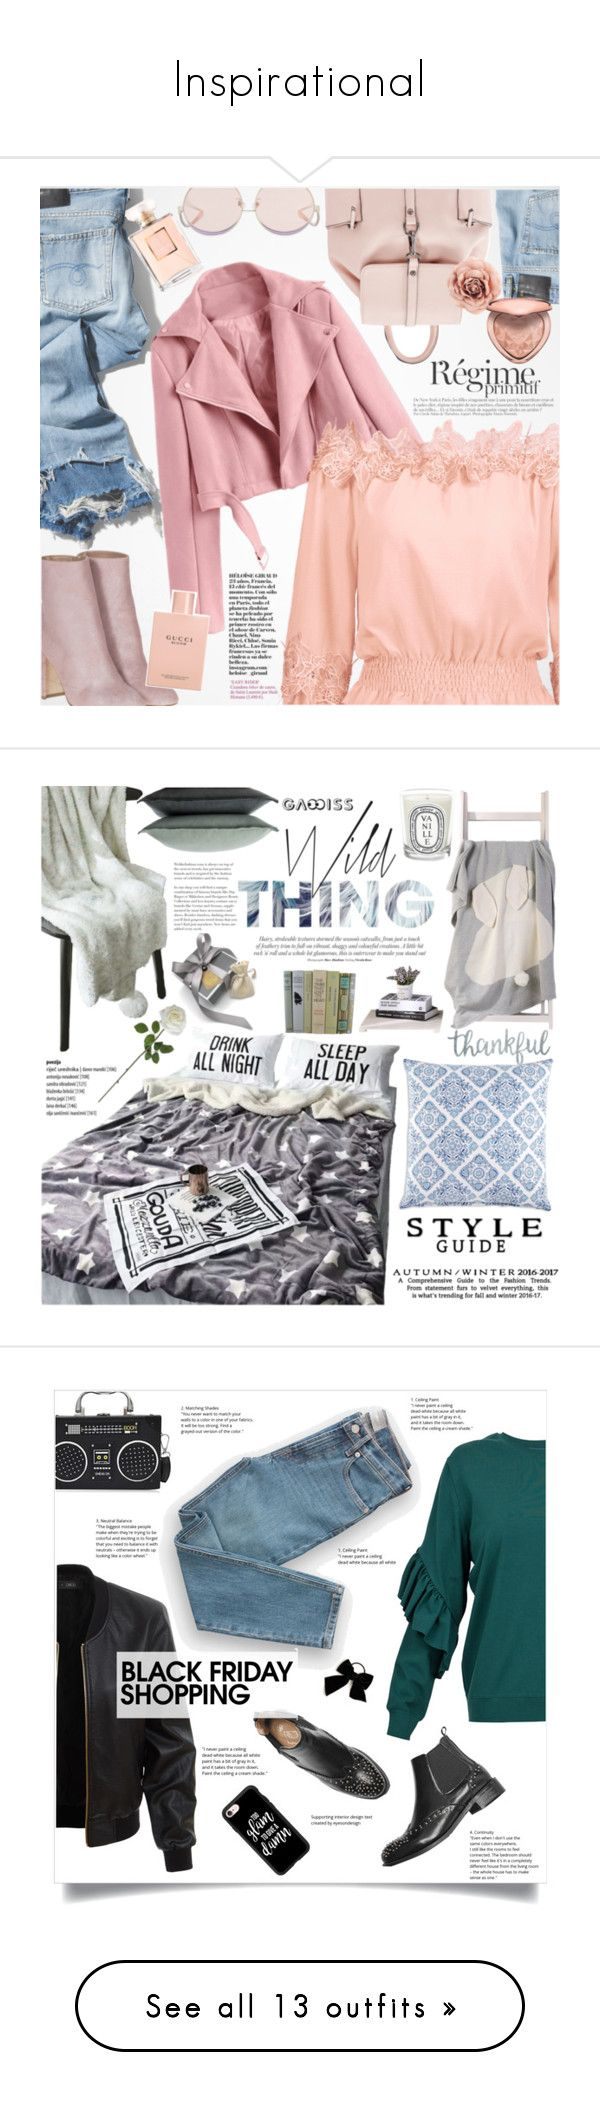 """""""Inspirational"""" by holography ❤ liked on Polyvore featuring R13, Laurence Dacade, N°21, Anja, Gucci, Too Faced Cosmetics, Chanel, polyvoreeditorial, zaful and interior"""